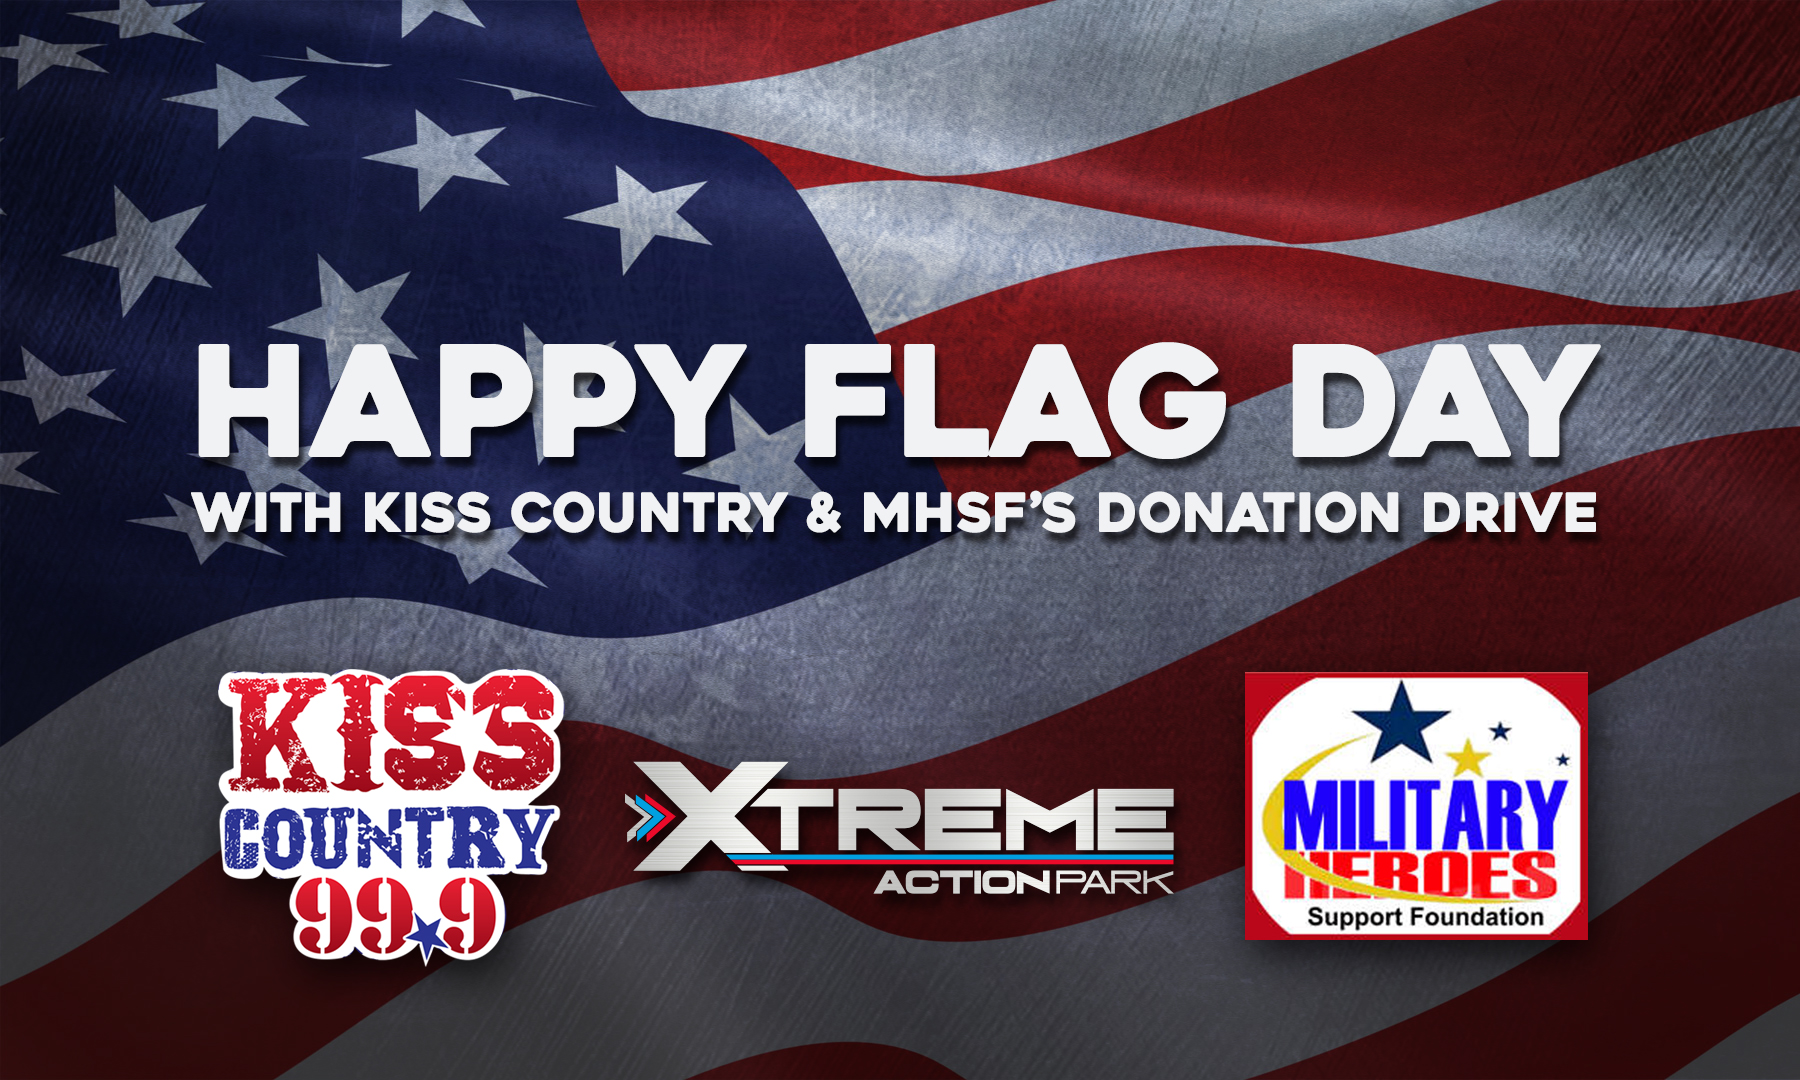 KISS Country Flag Day And Donation Drive